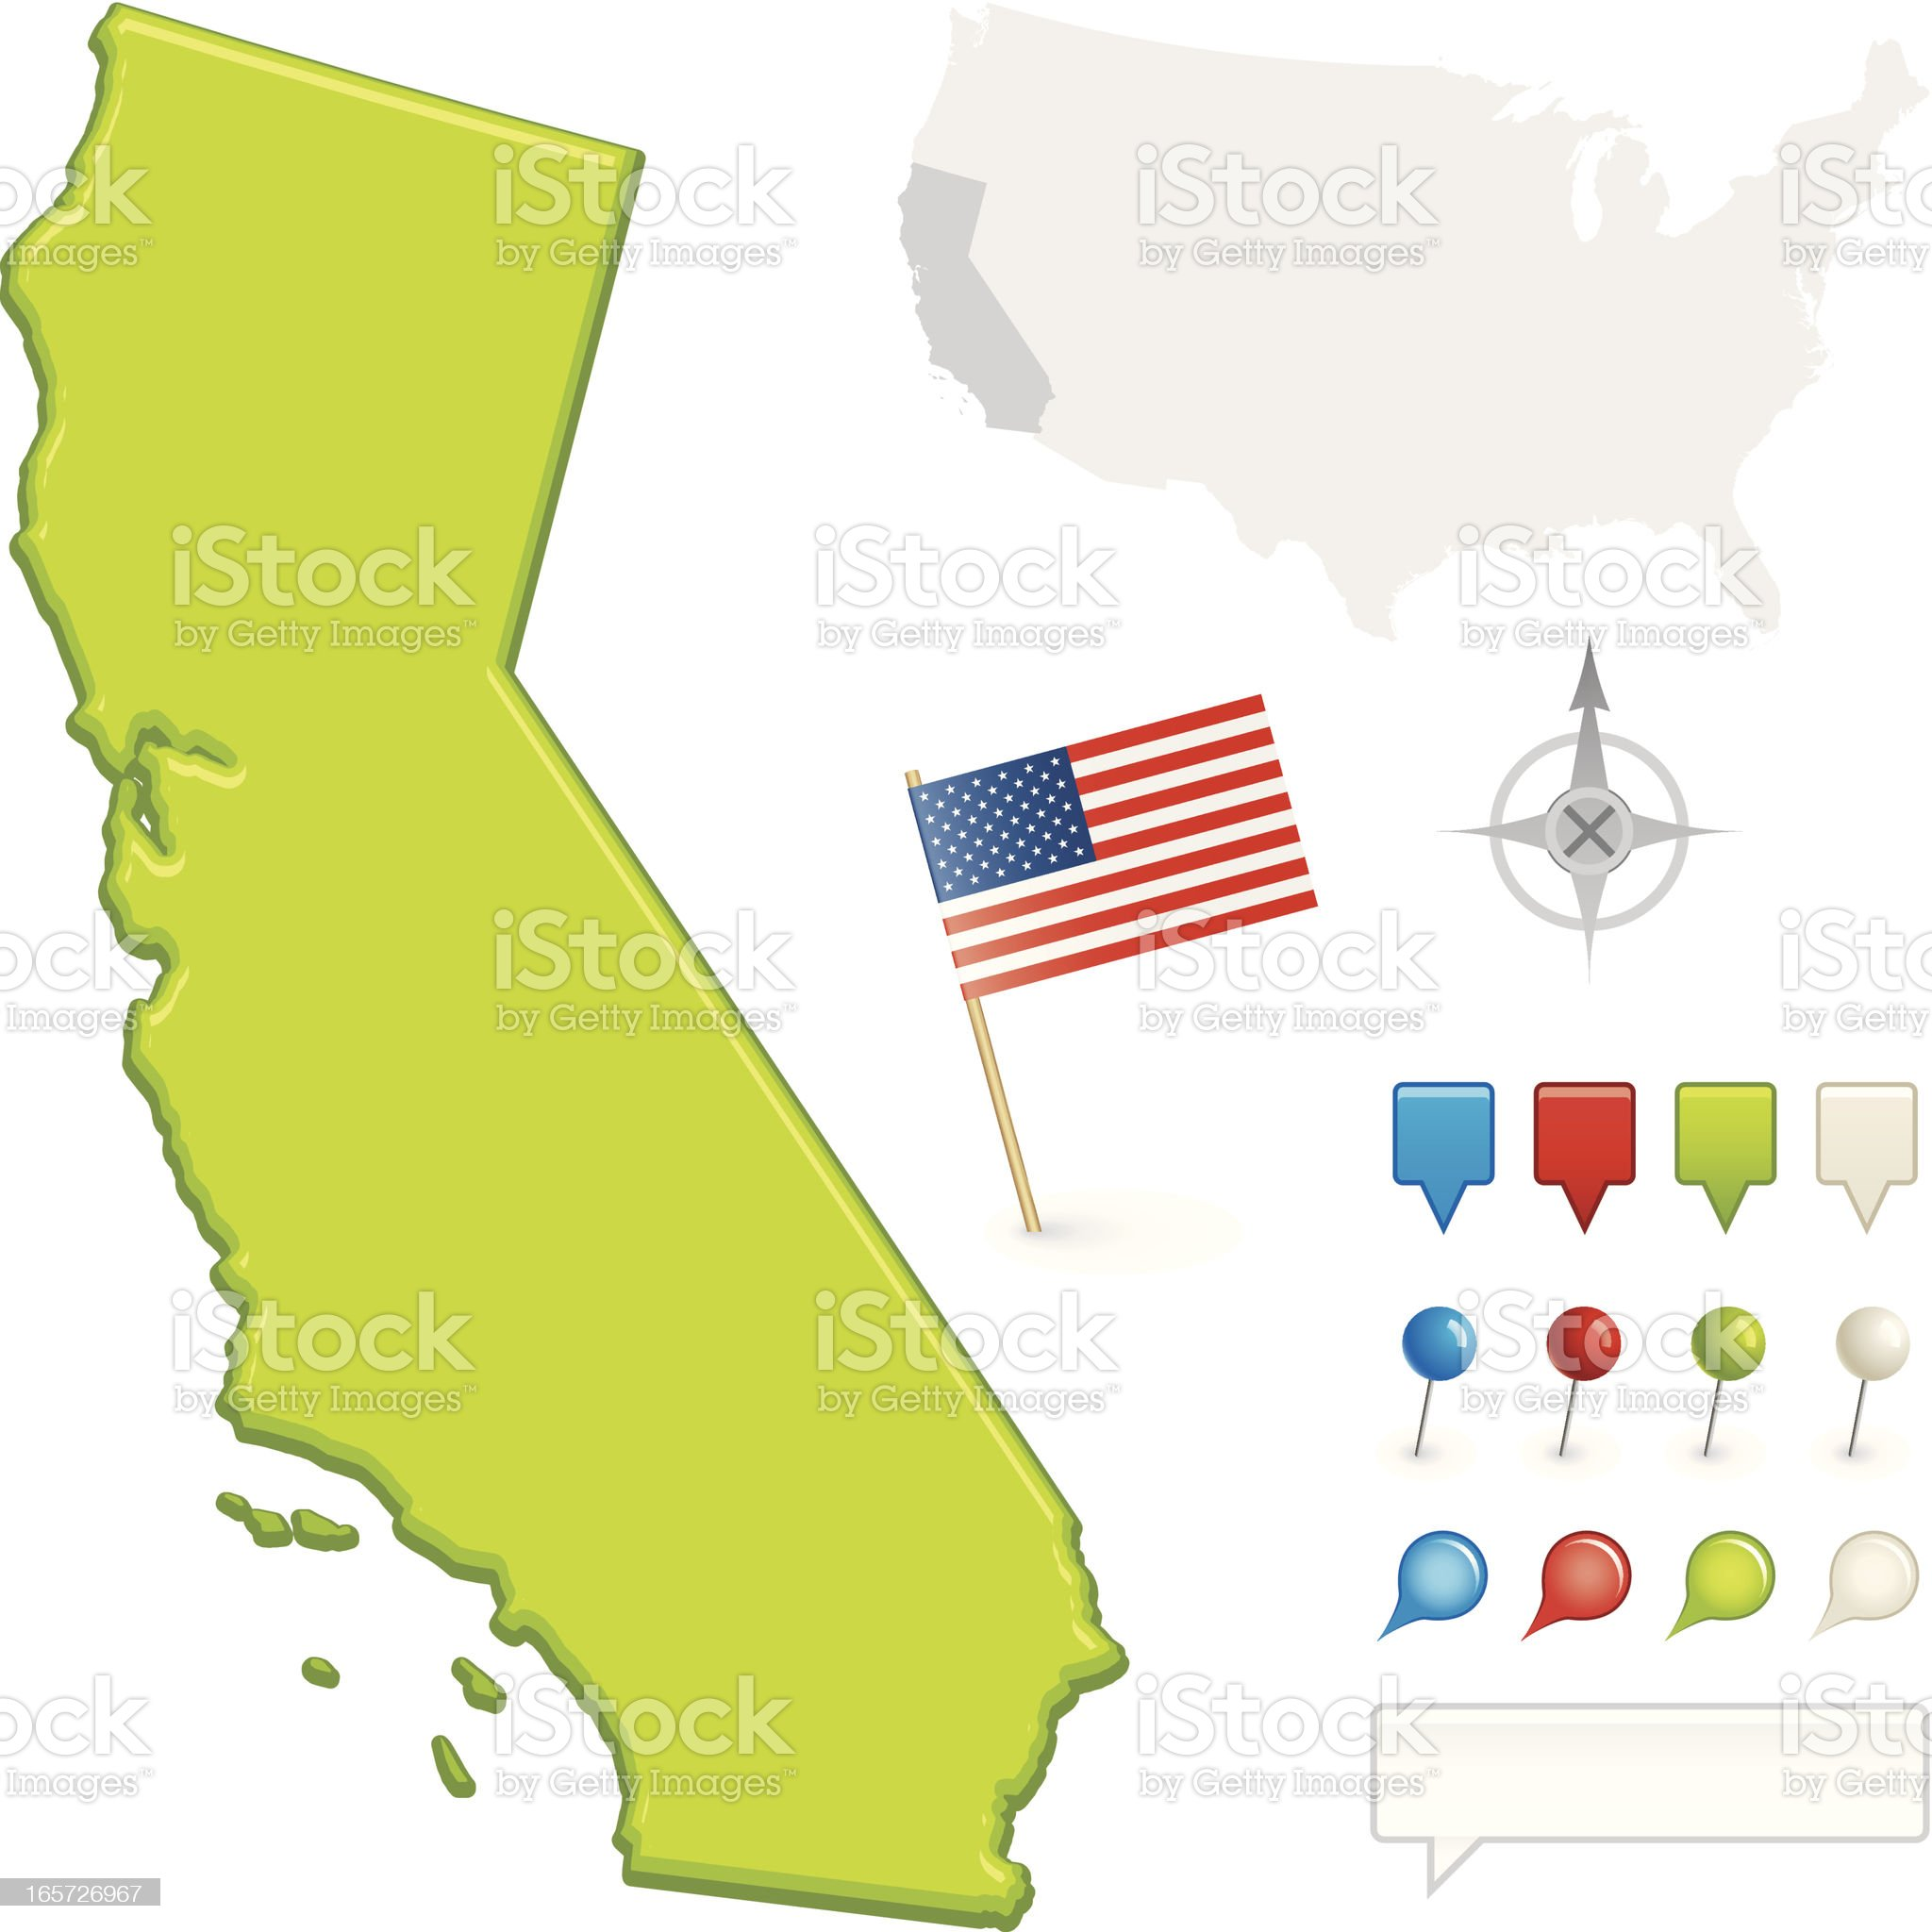 California State Map royalty-free stock vector art